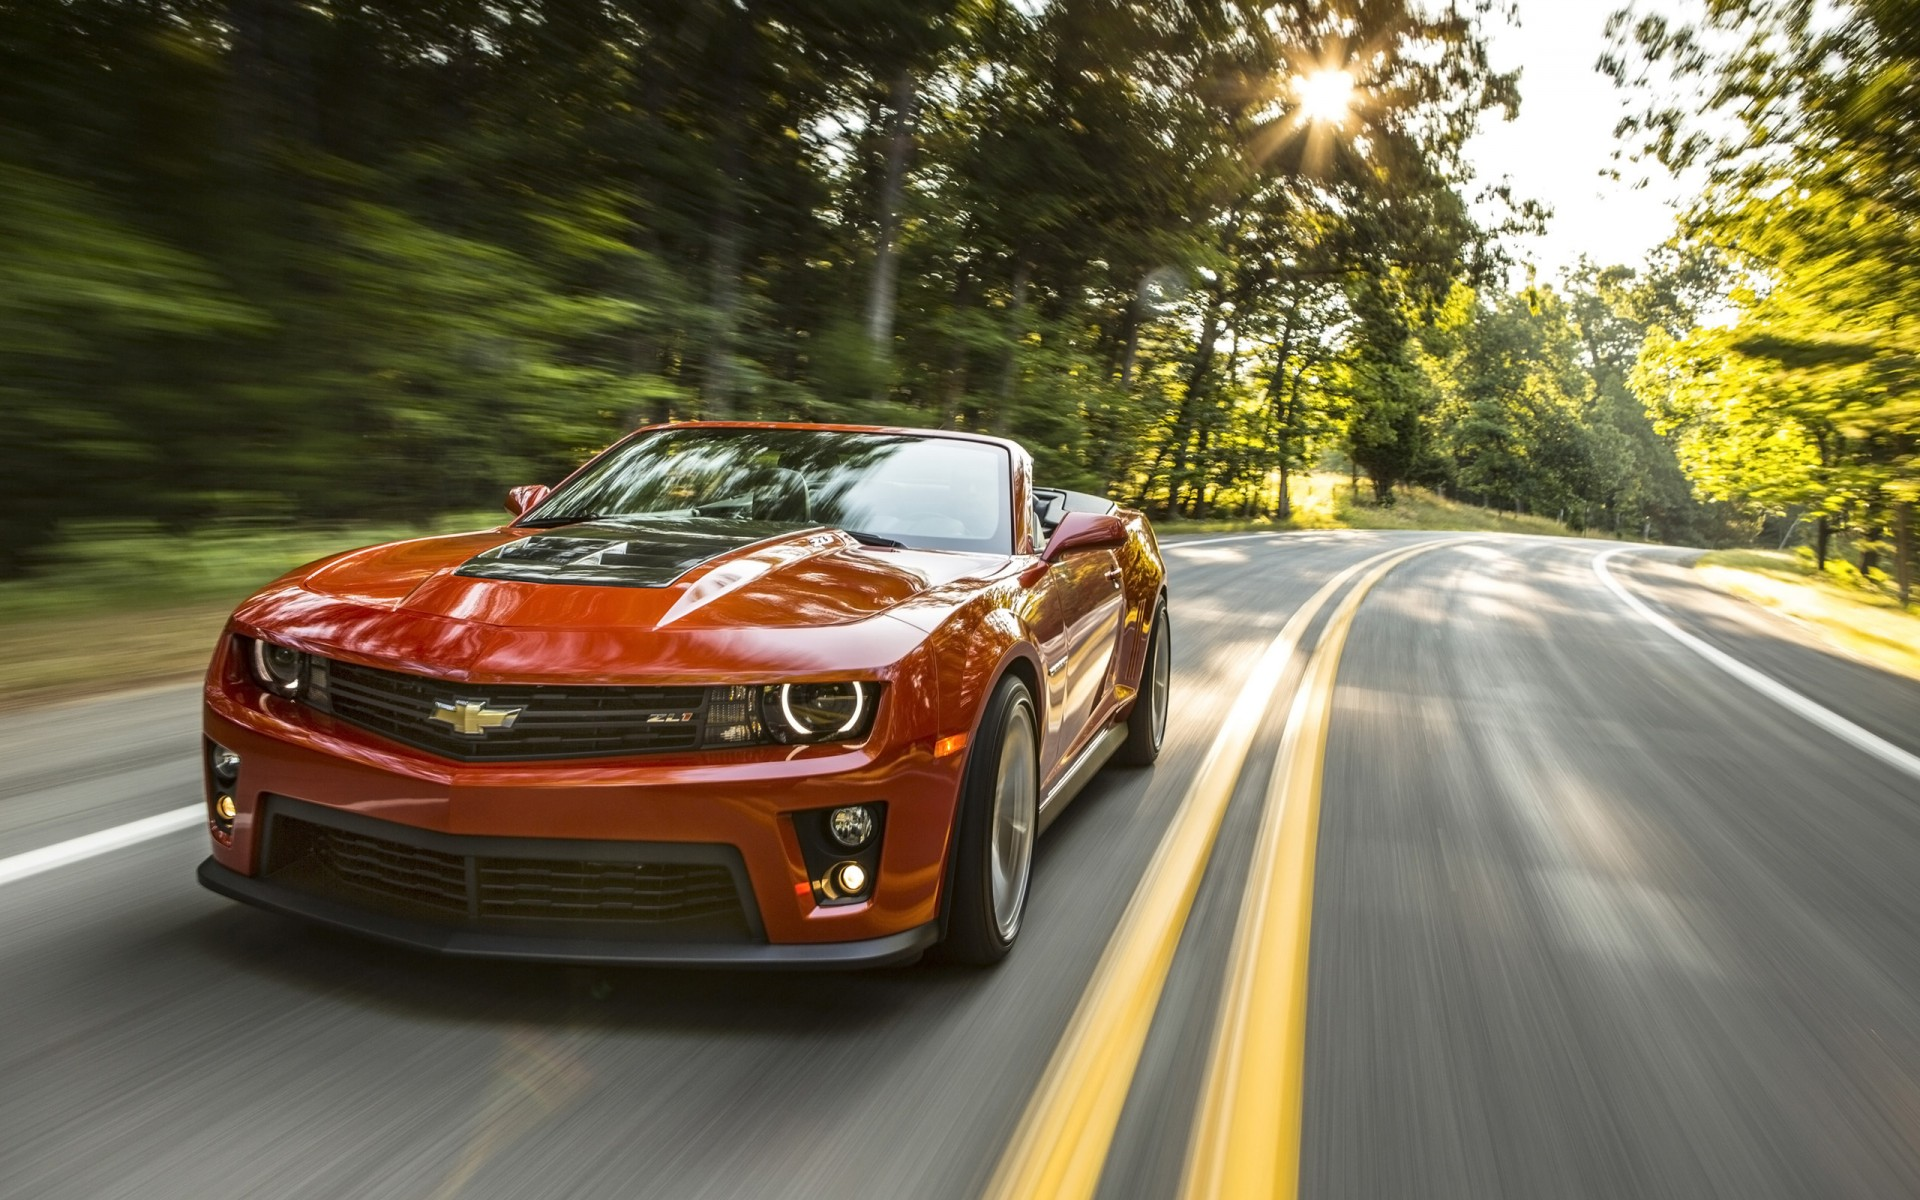 2014 Chevrolet Camaro ZL1 Convertible Wallpaper HD Car 1920x1200